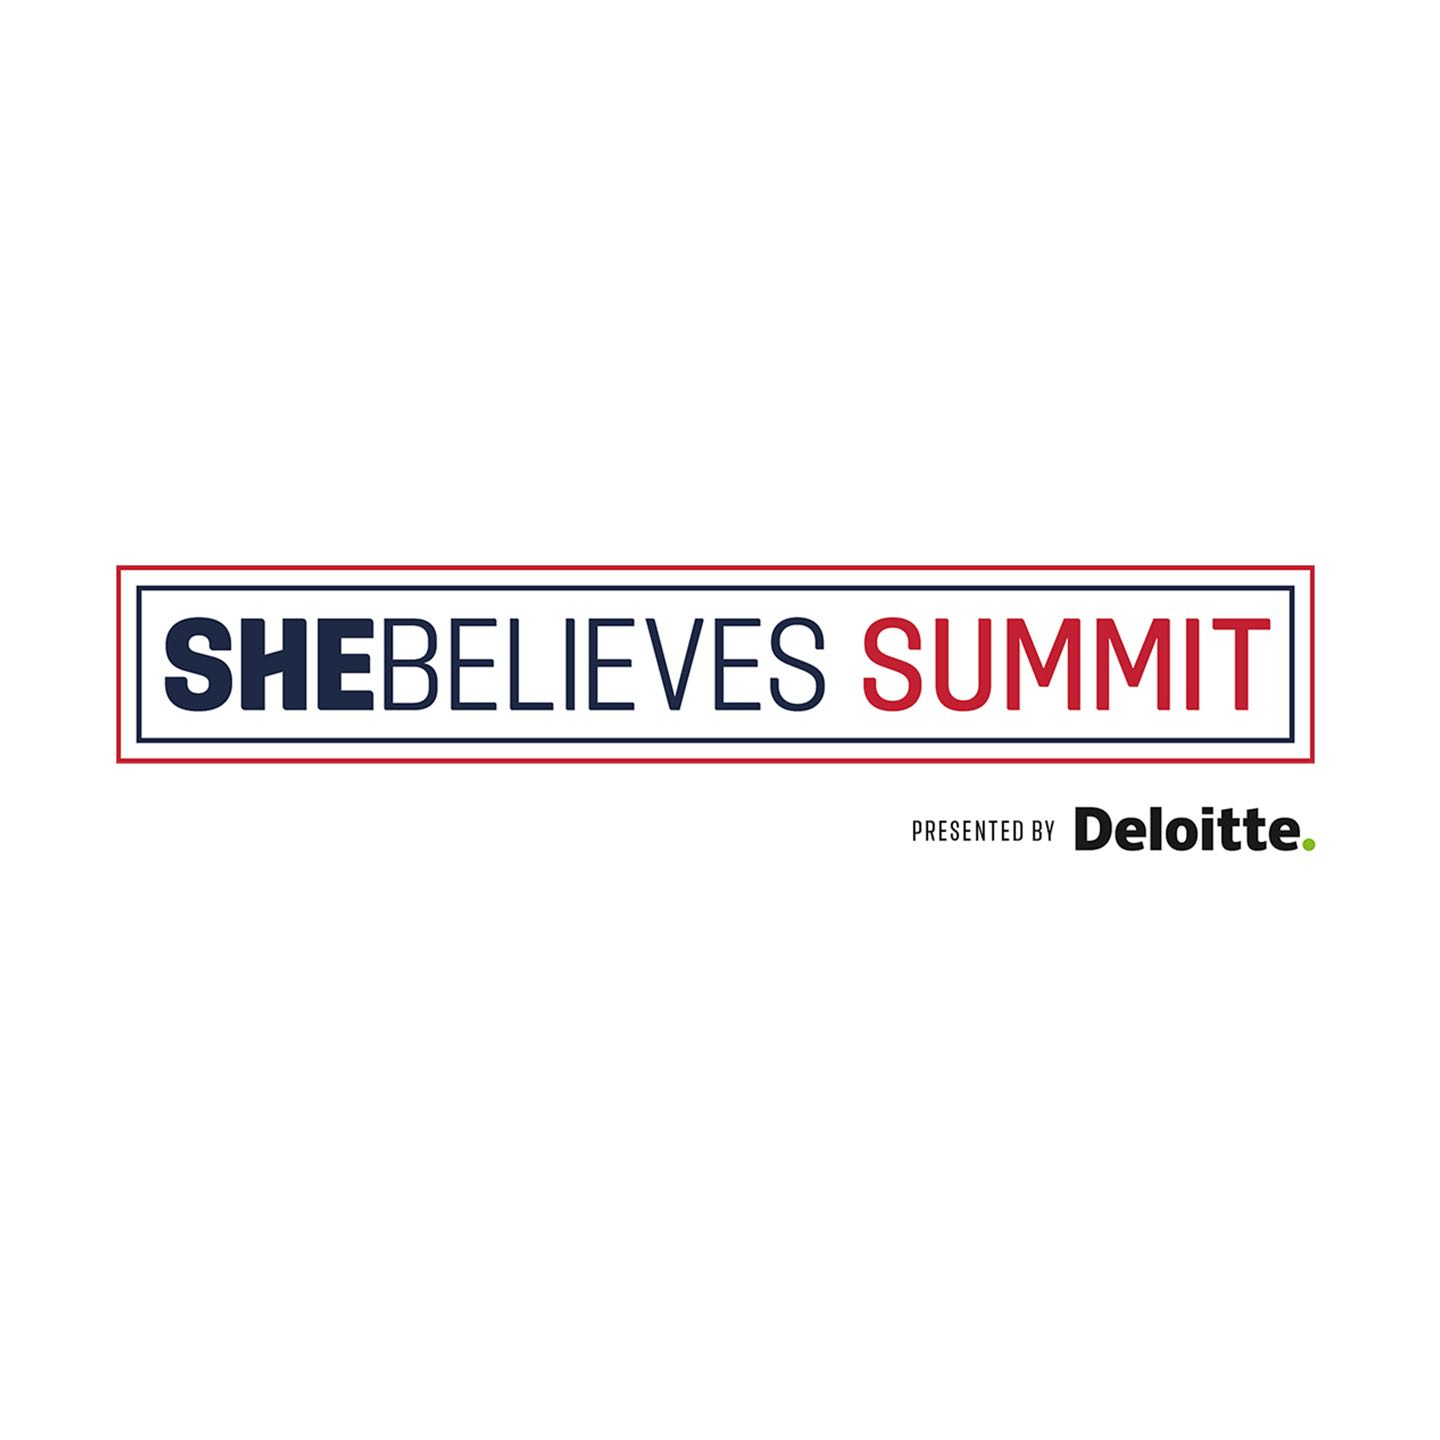 SheBelieves Summit, Presented by Deloitte